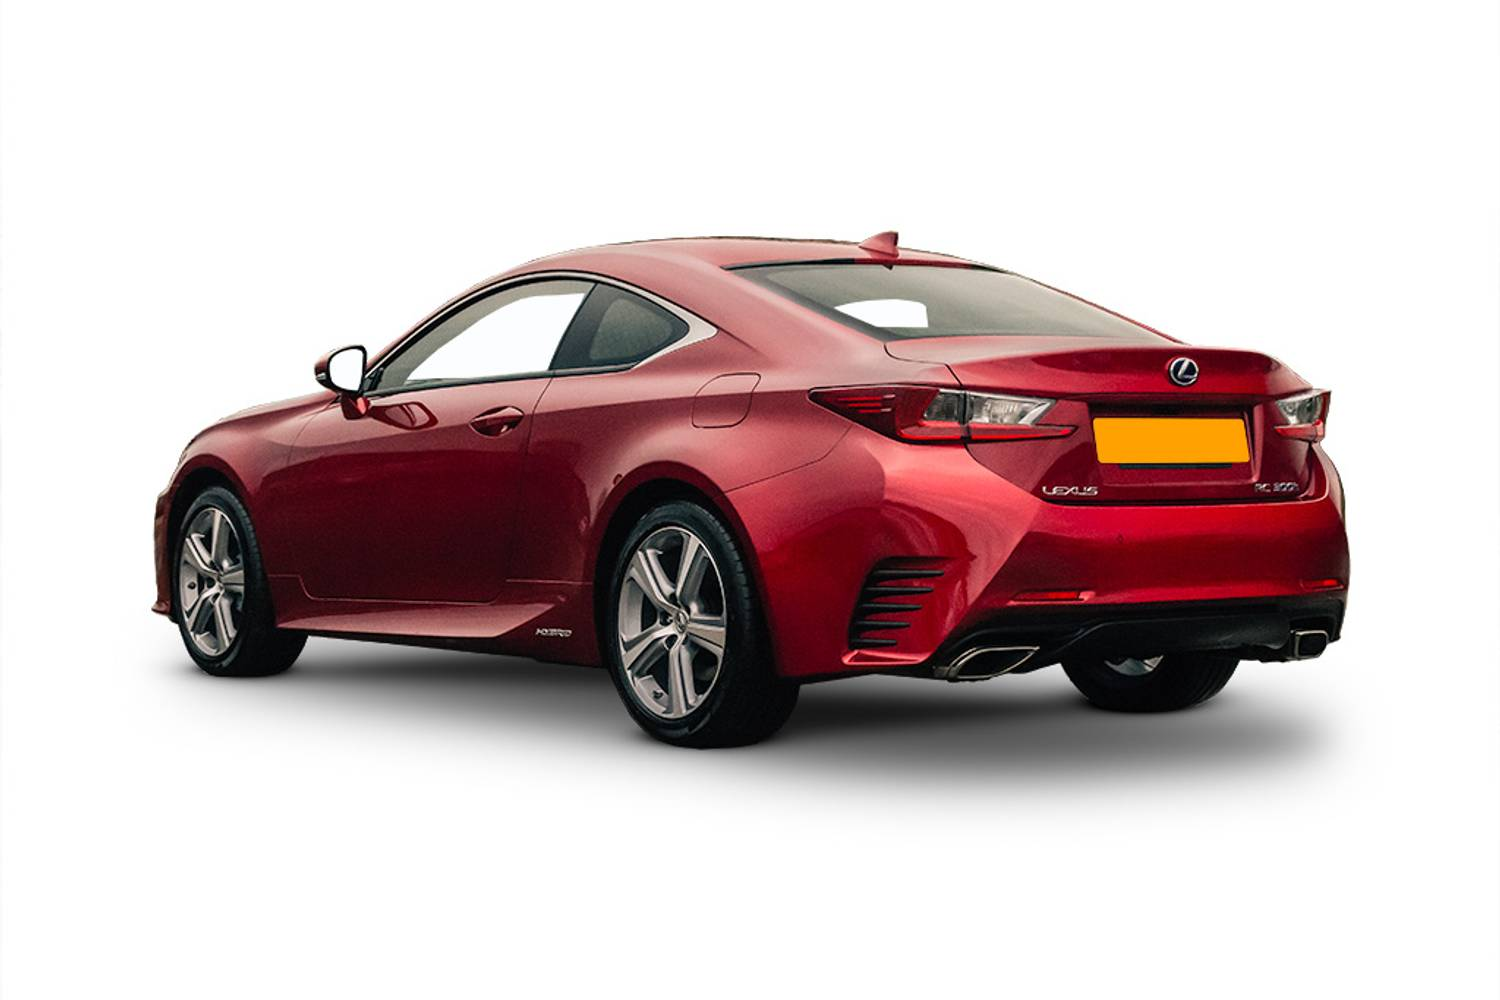 new lexus rc coupe 300h 2 5 f sport 2 door cvt 2015 for sale. Black Bedroom Furniture Sets. Home Design Ideas